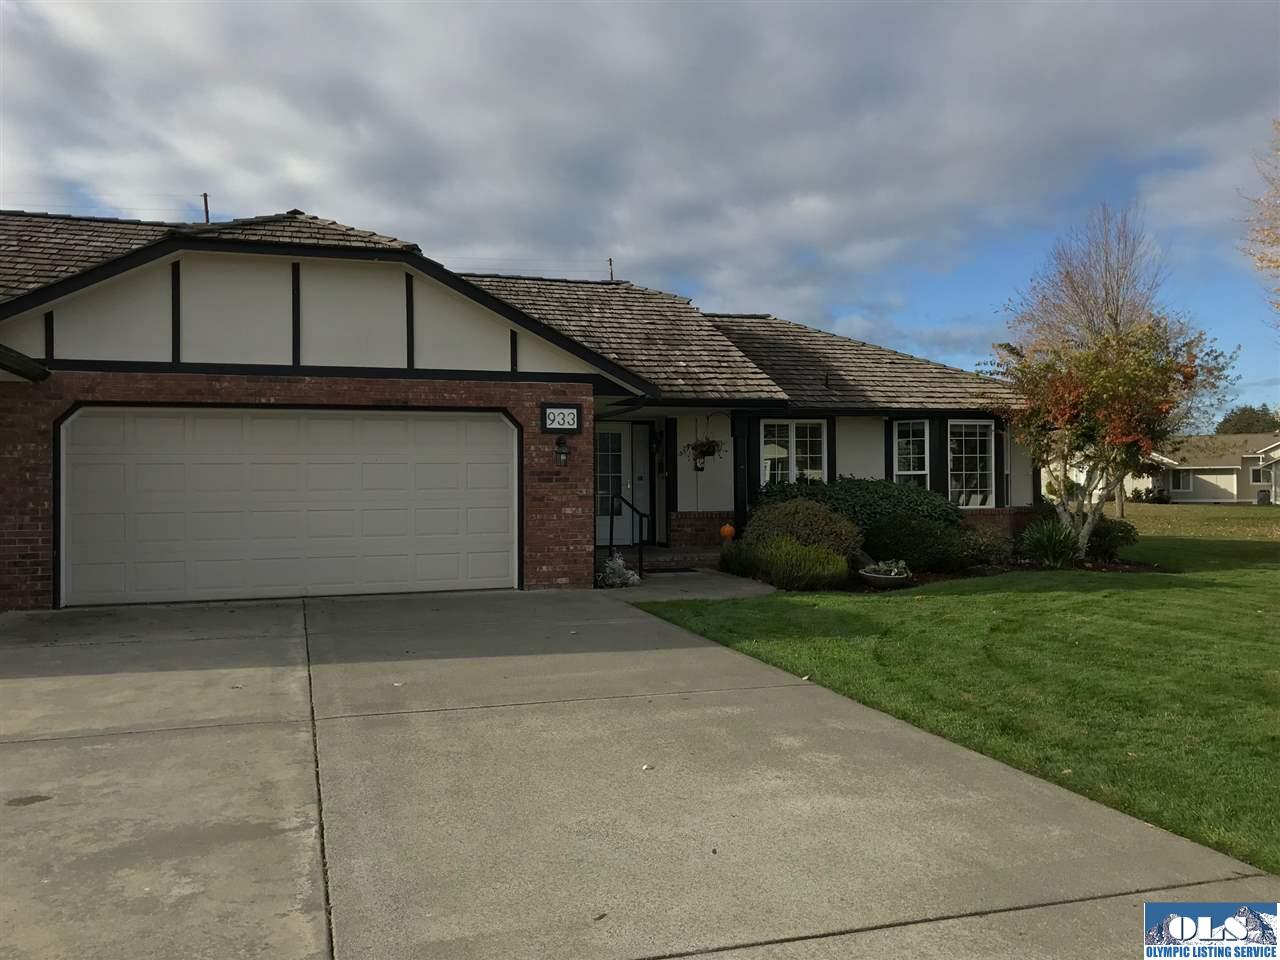 Mls 322141 933 Woolsey Court Sequim Wa 98382 Contact Chuck At